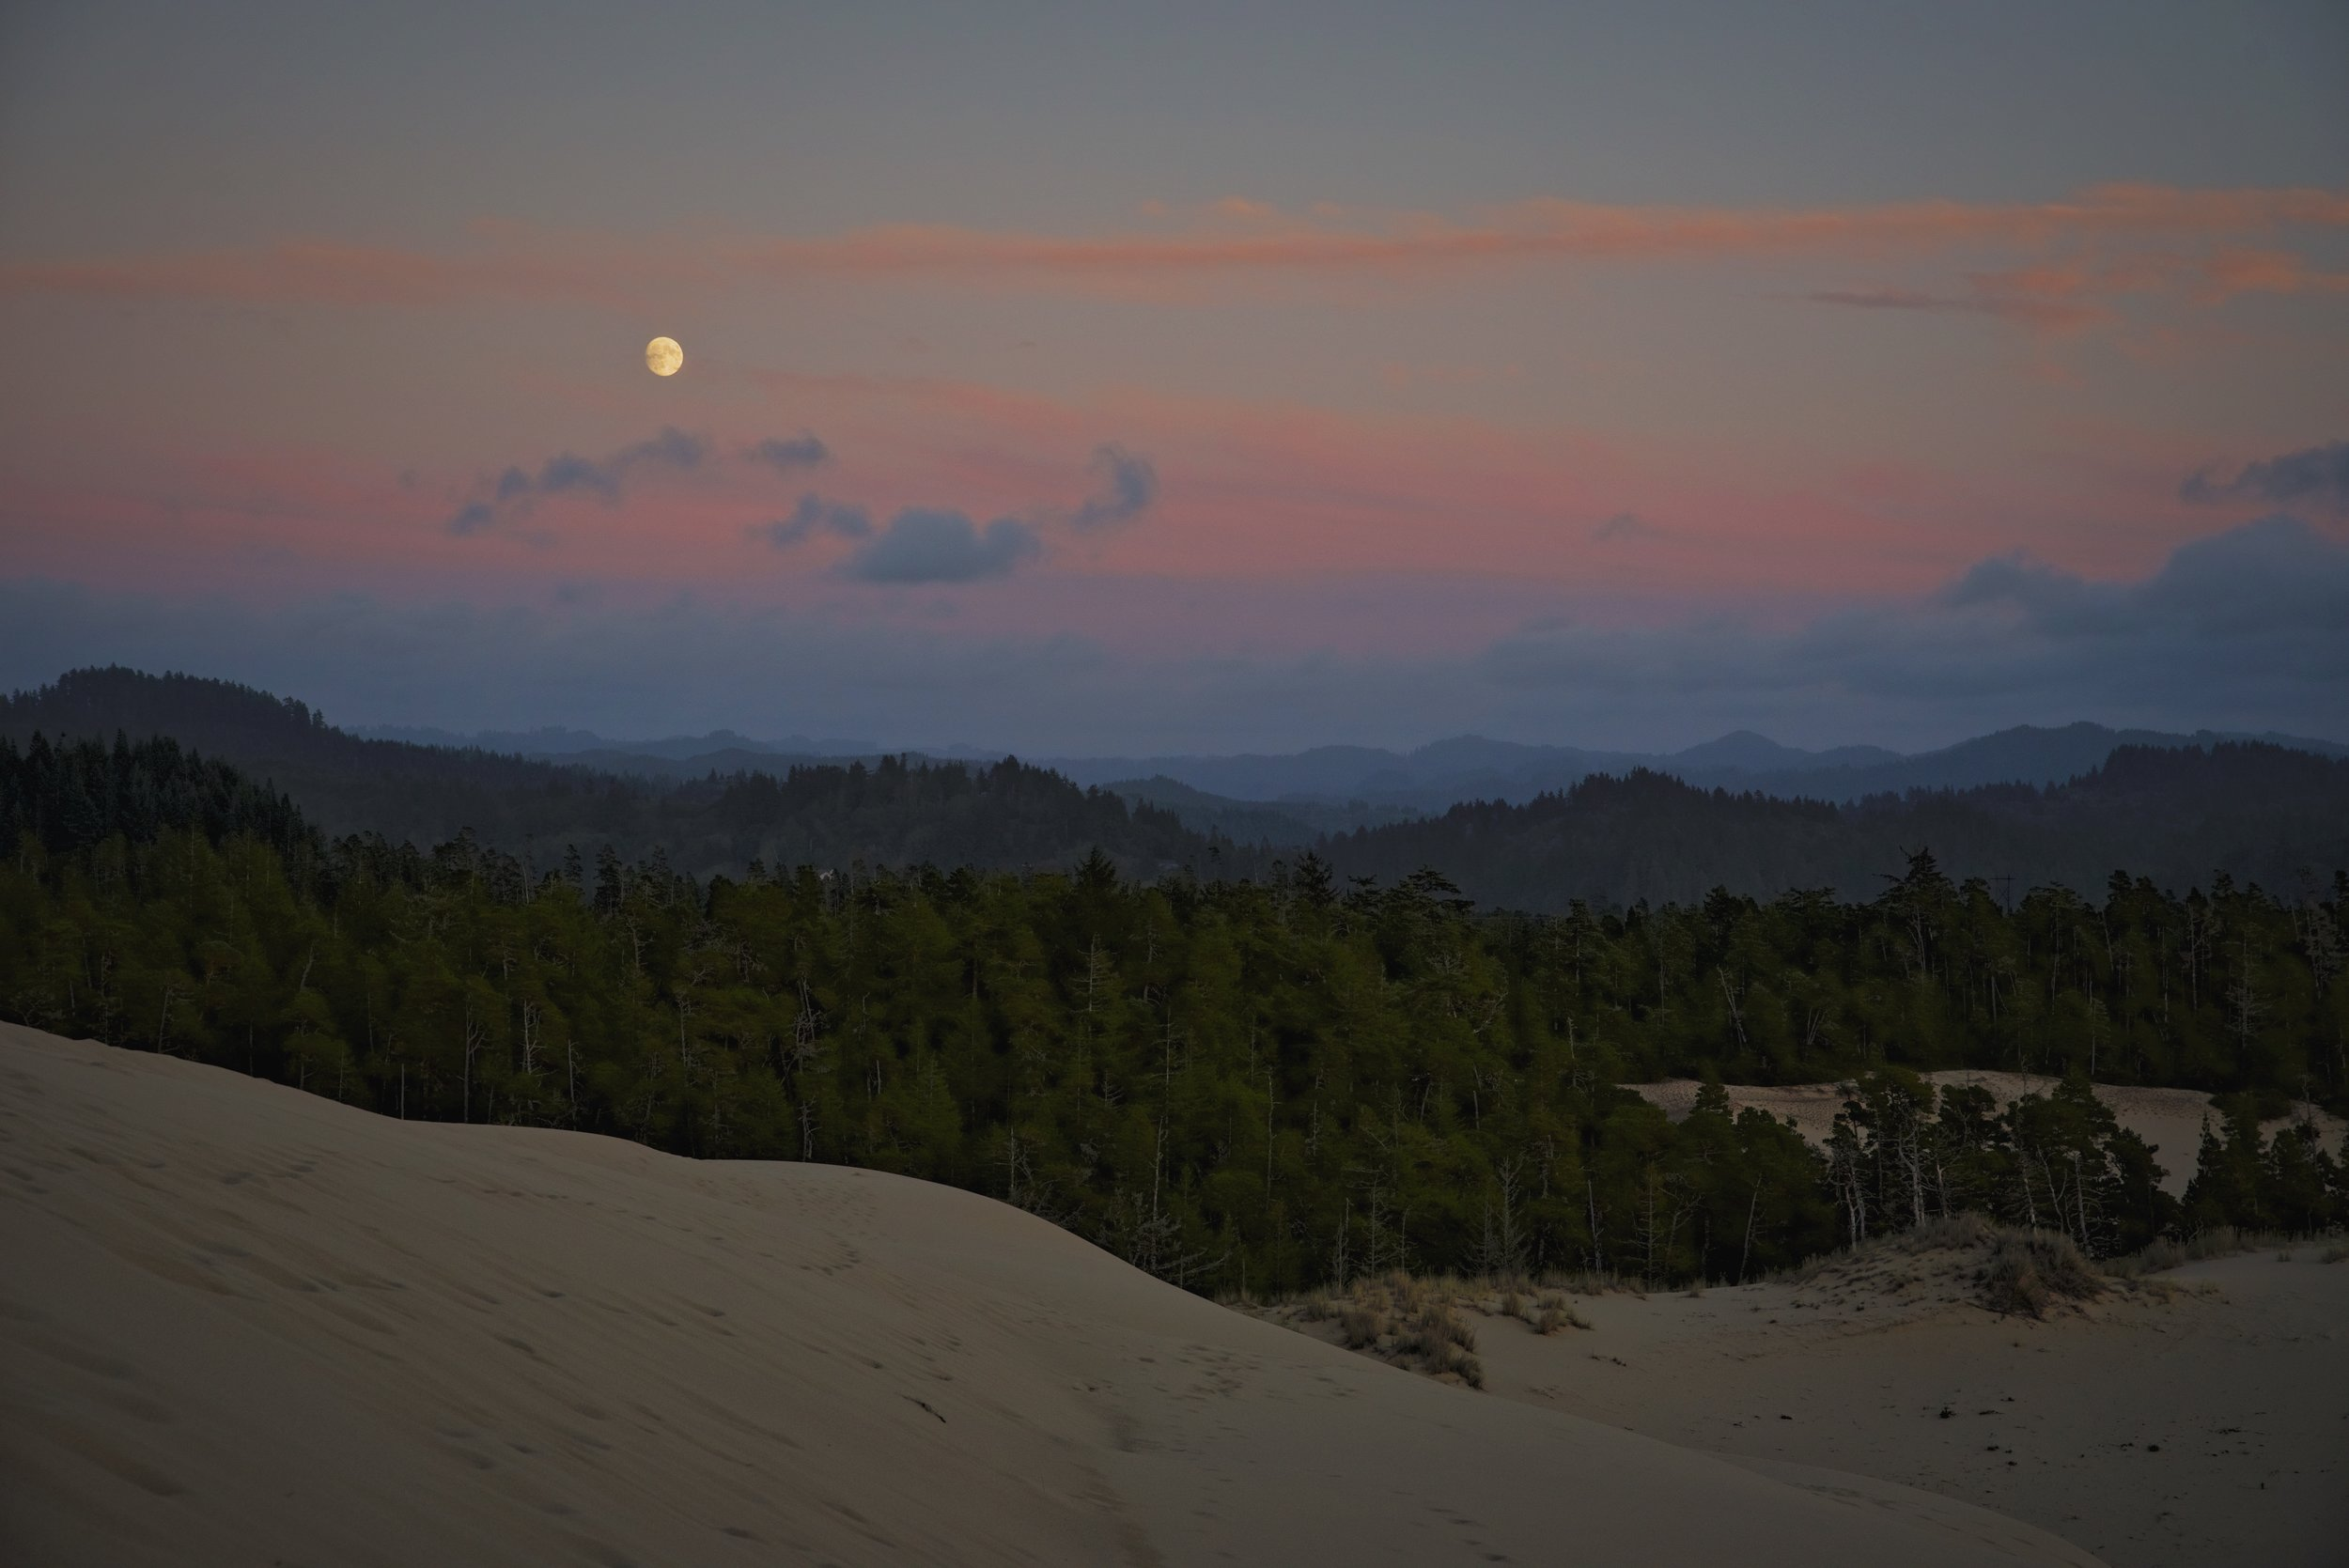 Not only did we get to see the sunset, we got to see the moon rise.